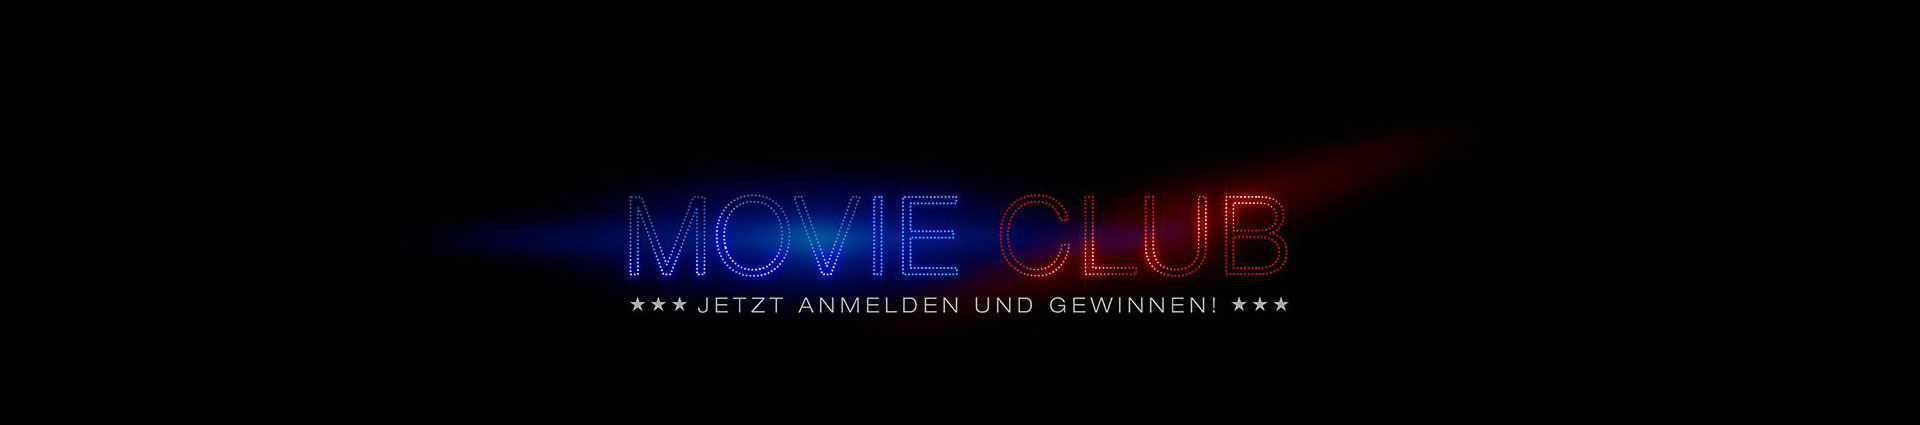 Movie Club Registrierung